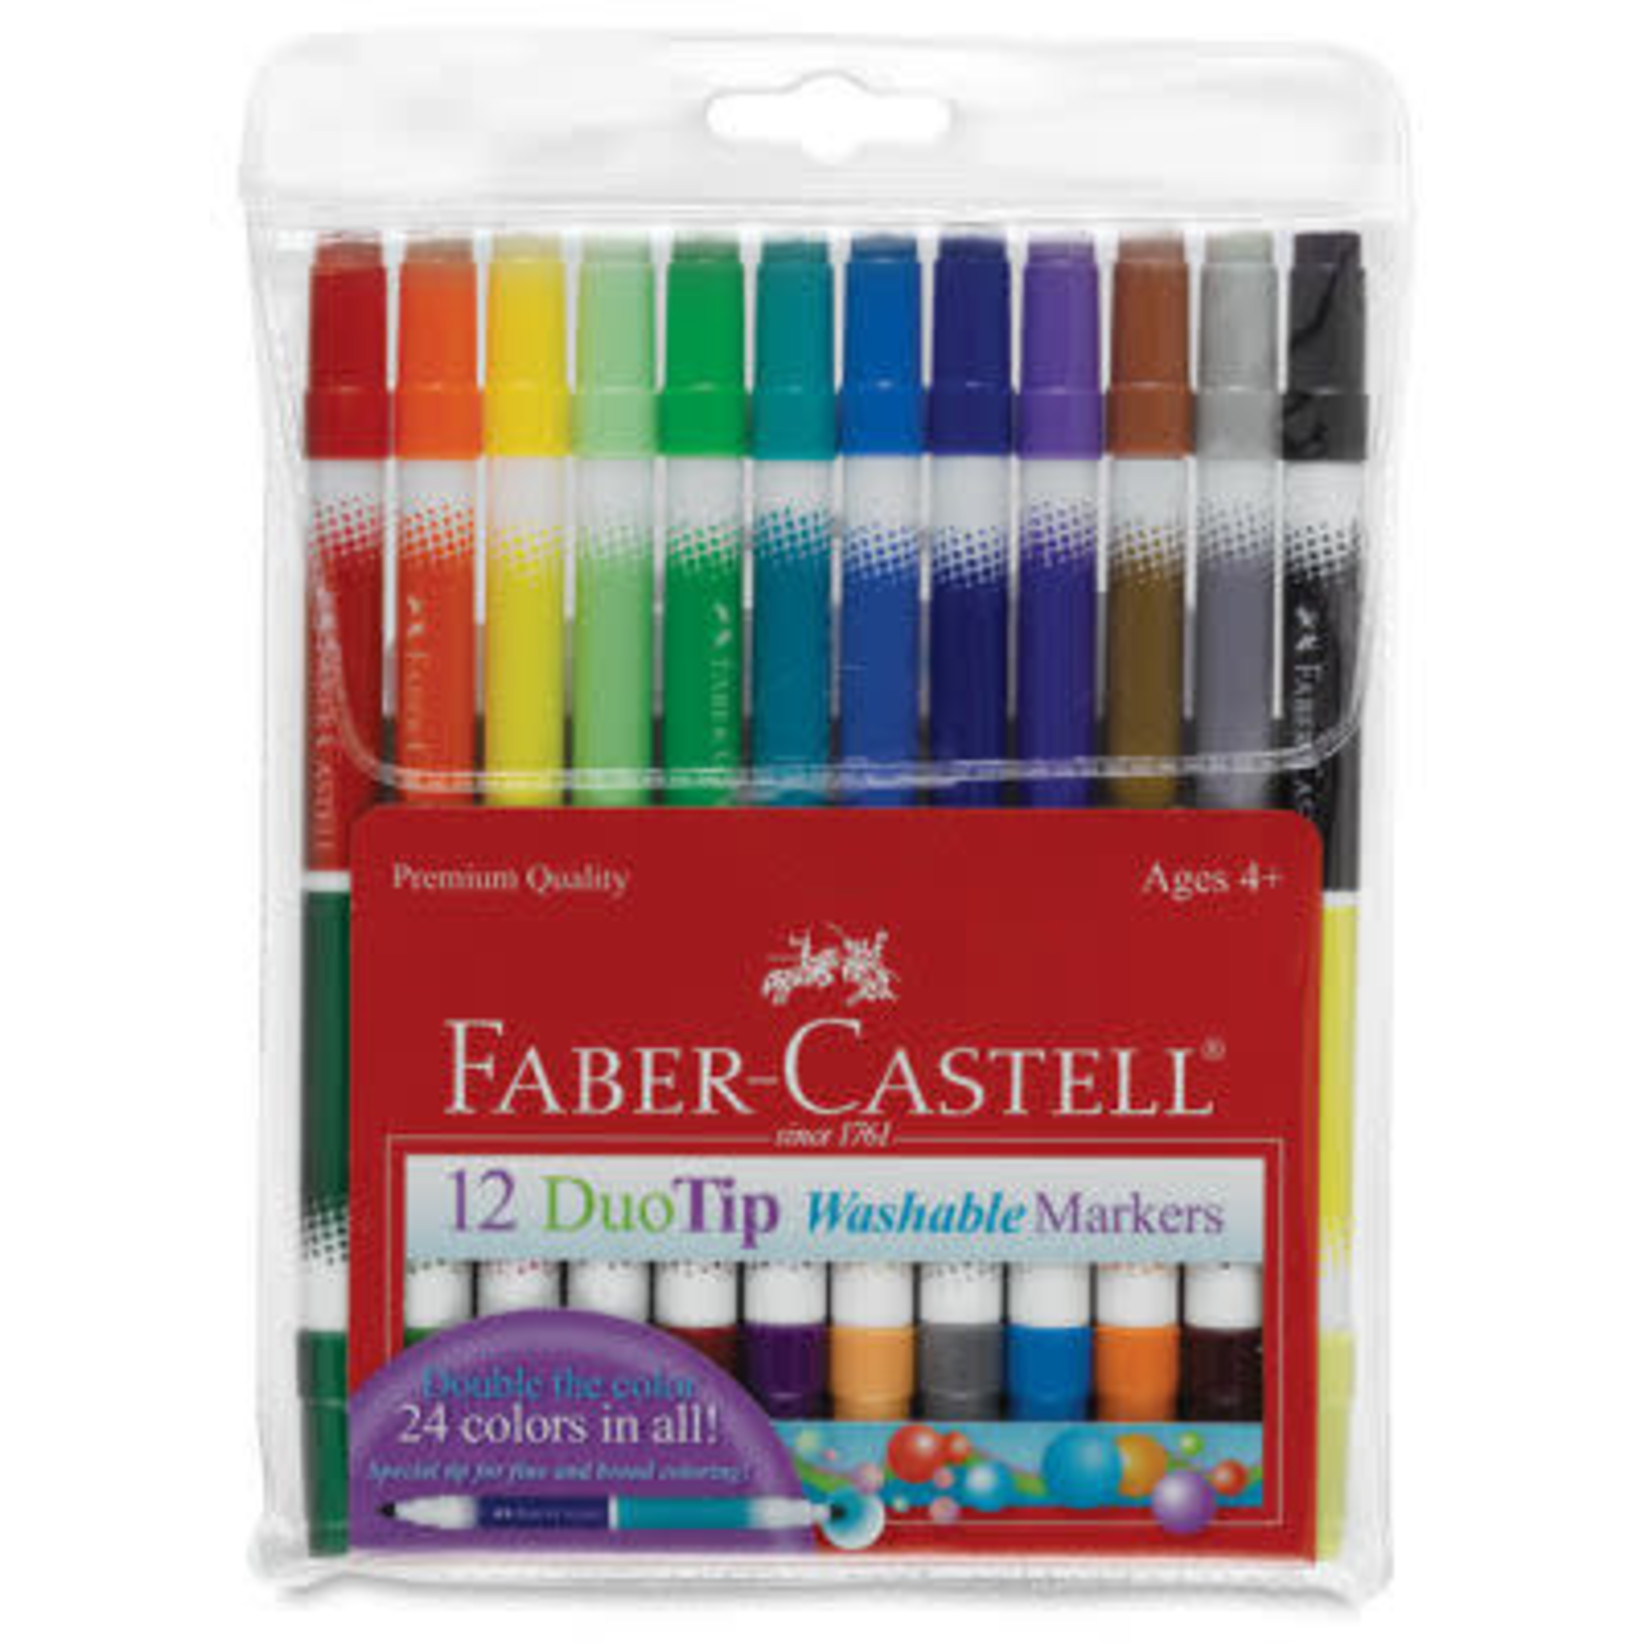 FABER-CASTELL DUOTIP WASHABLE MARKERS SET OF 12